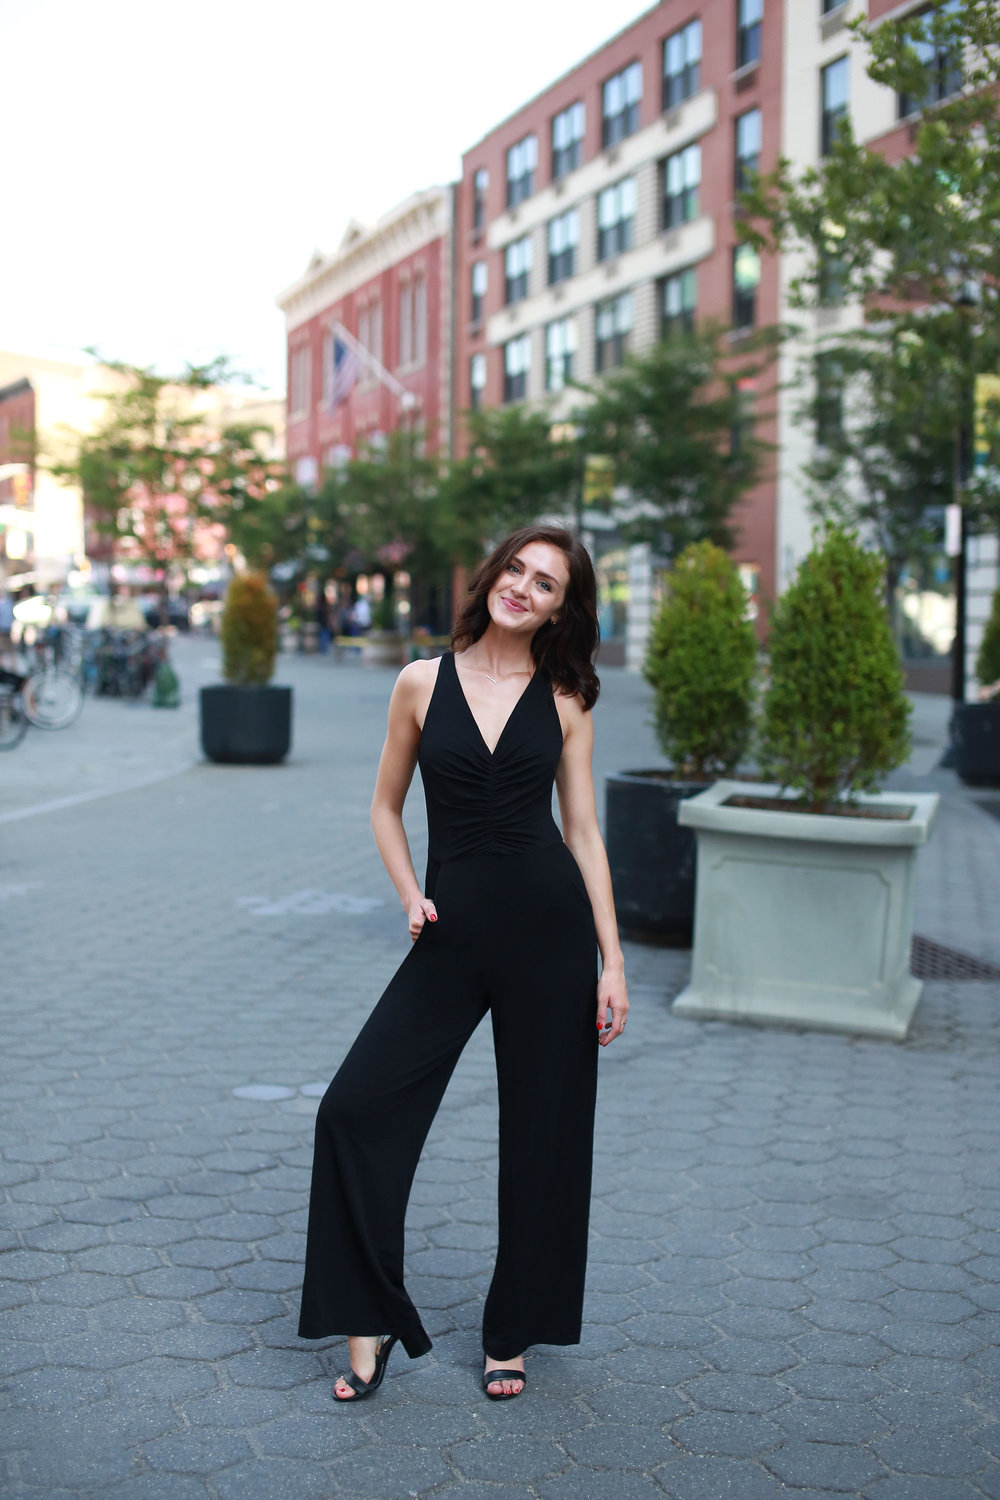 City Nights - Warm Summer nights in the city call for your best sexy-meets-comfy look. Get your NYC nighttime-glam on after a day in the sun and slip into one of our favorite LBJ's. You'll be able to lounge, dance and dine with ease thanks to the halter-style top and flowy pants.